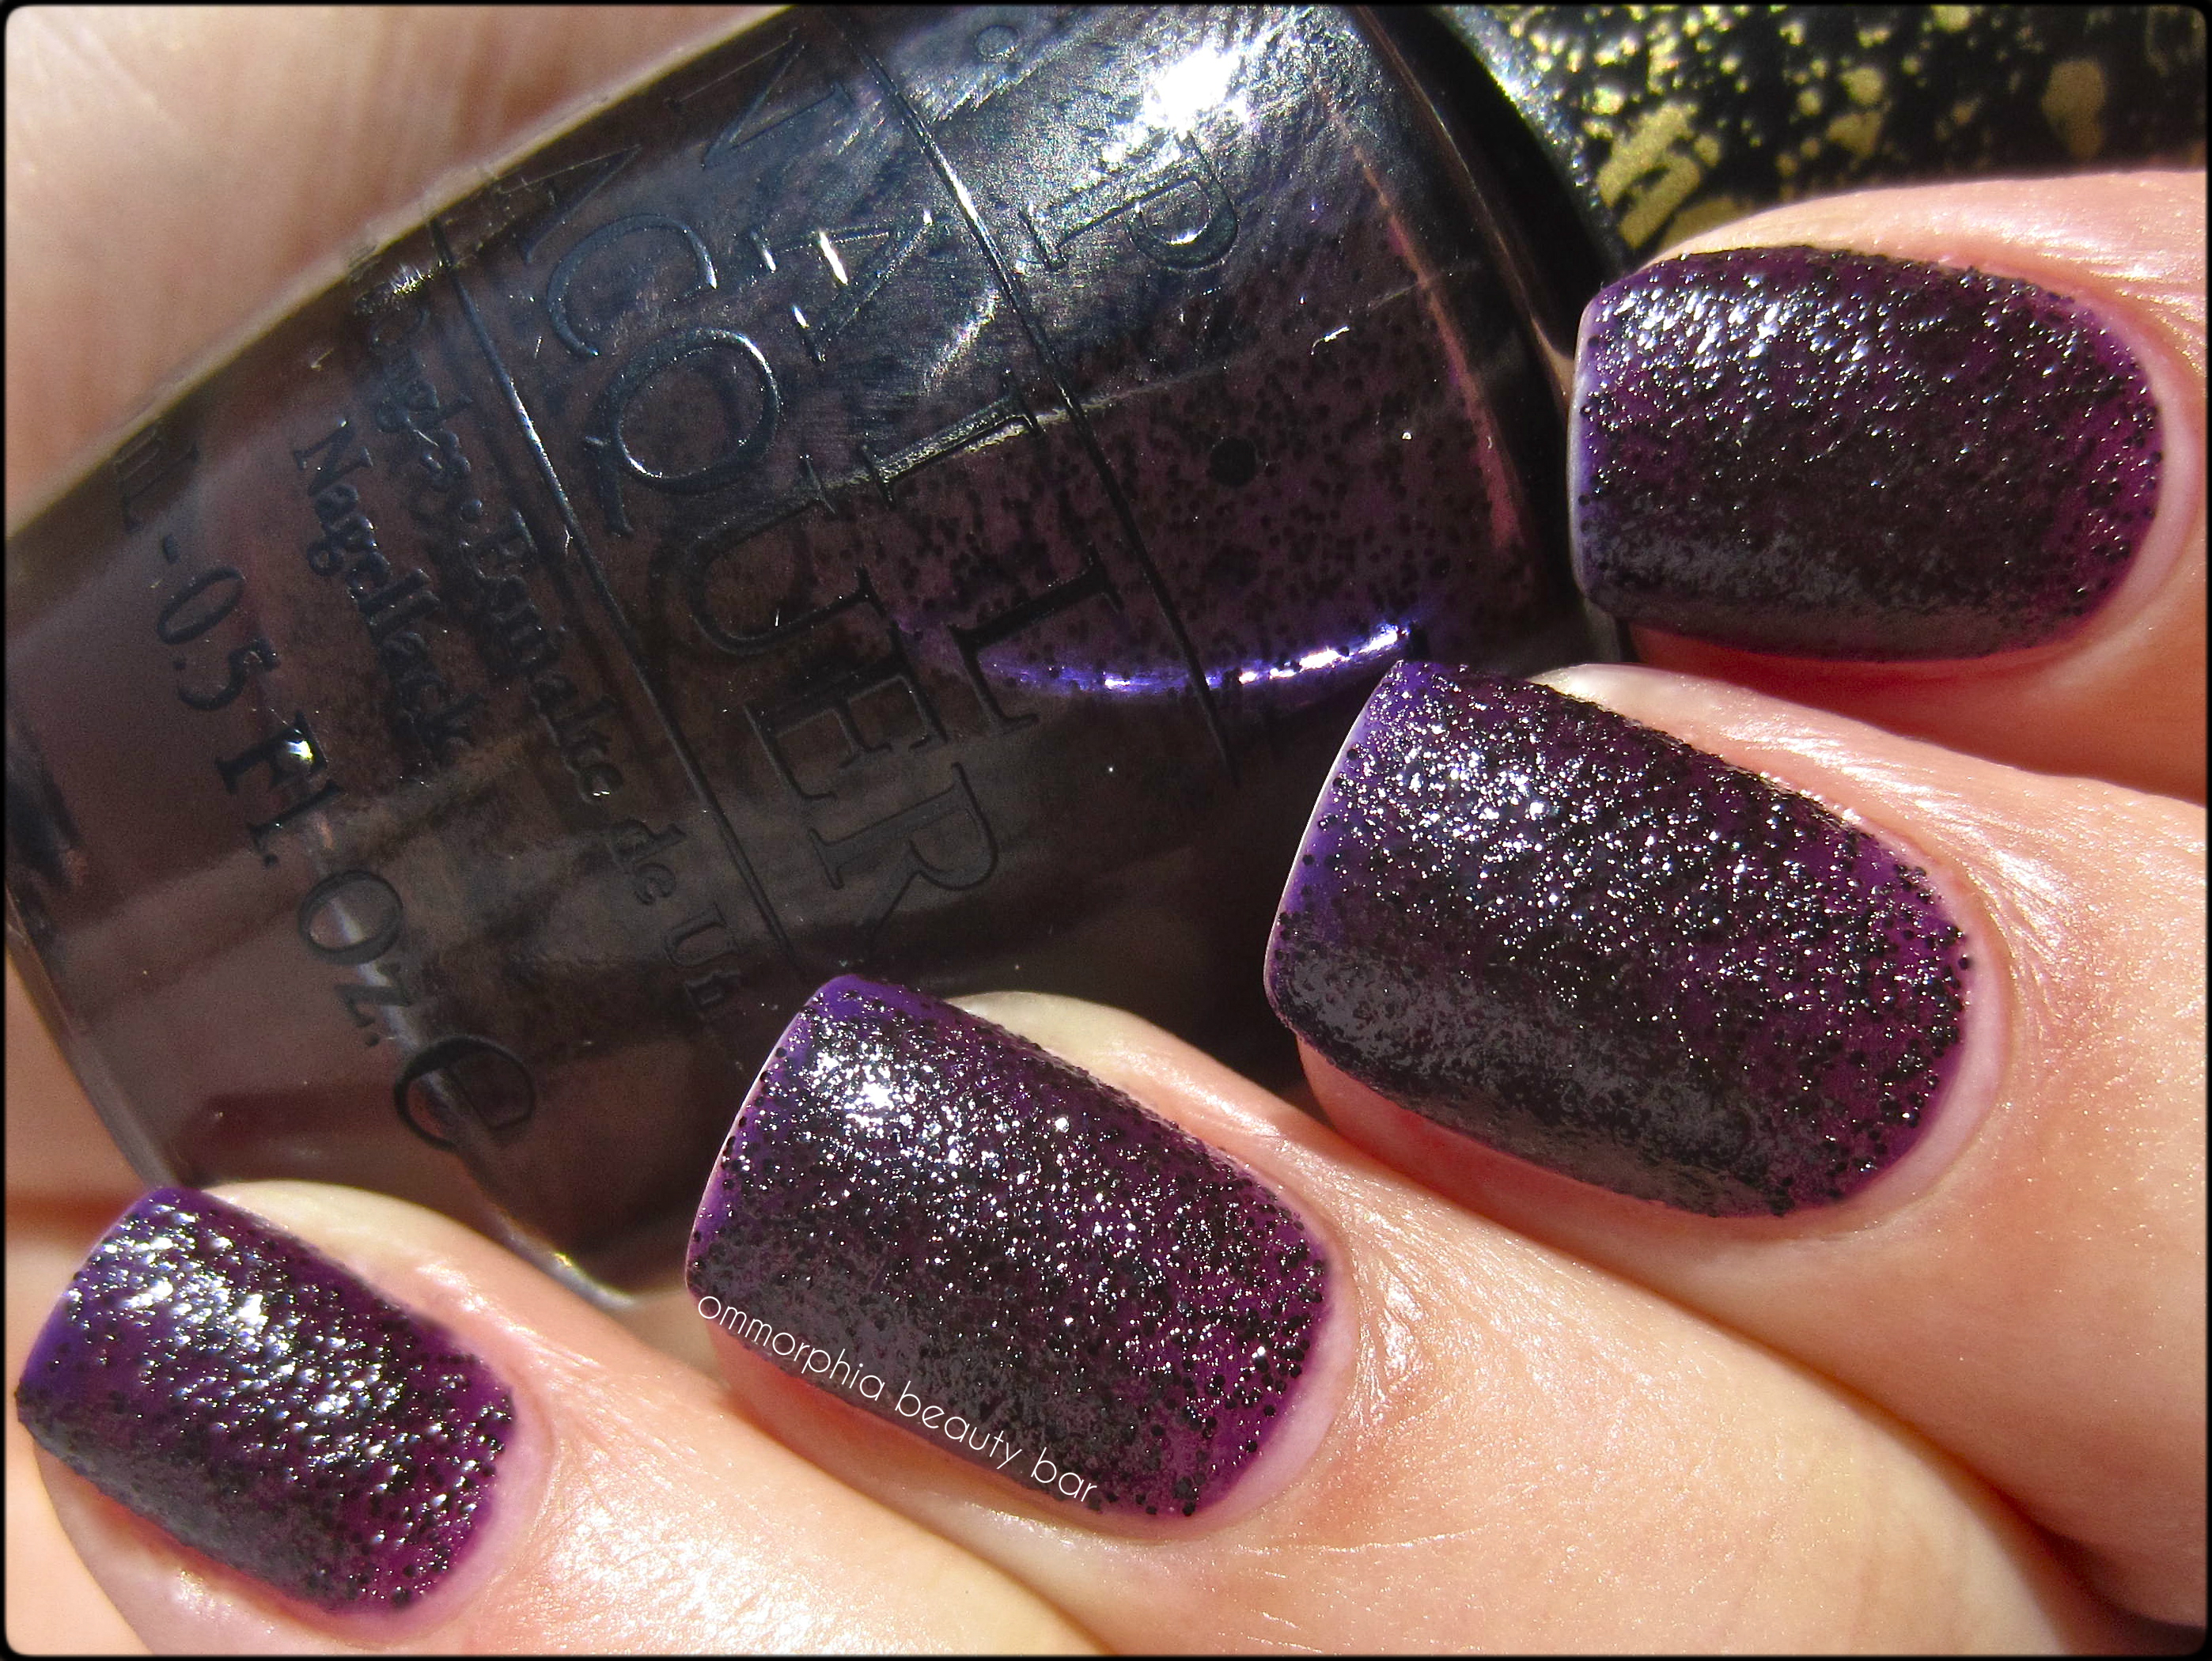 OPI The Bond Girls Liquid Sand Collection Review | Nearly Nailed It!